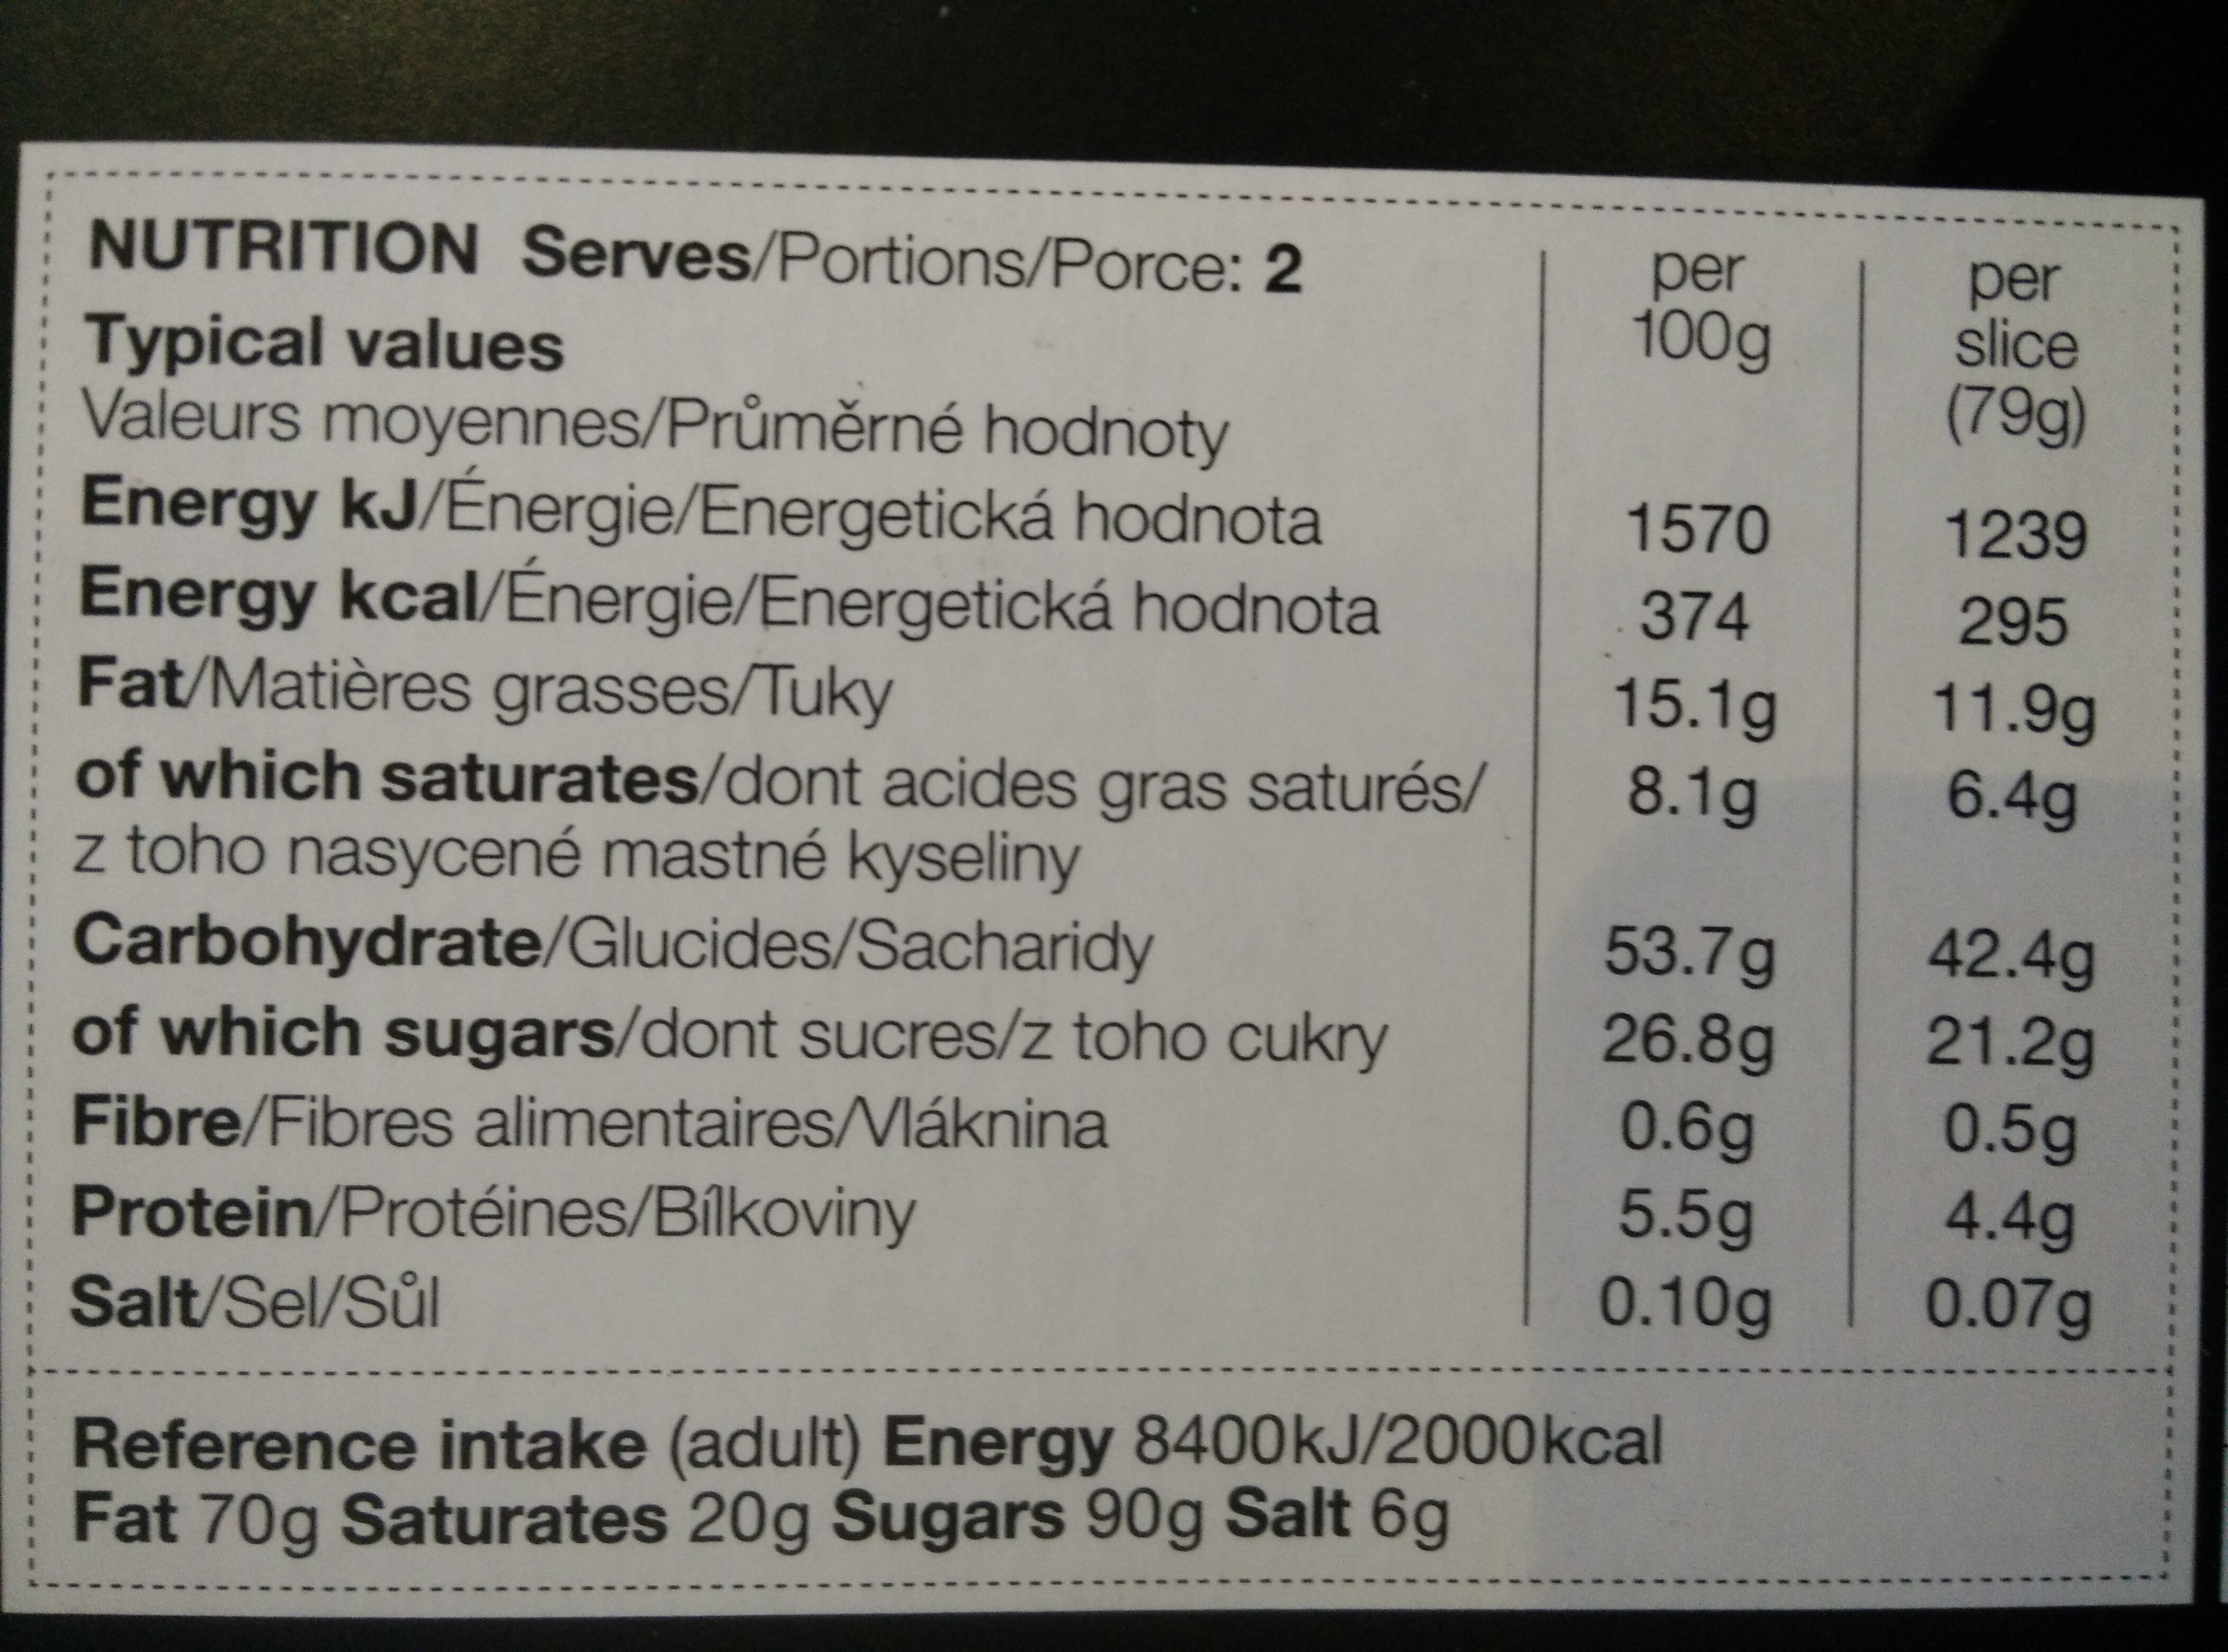 2 tart au citron slices - Nutrition facts